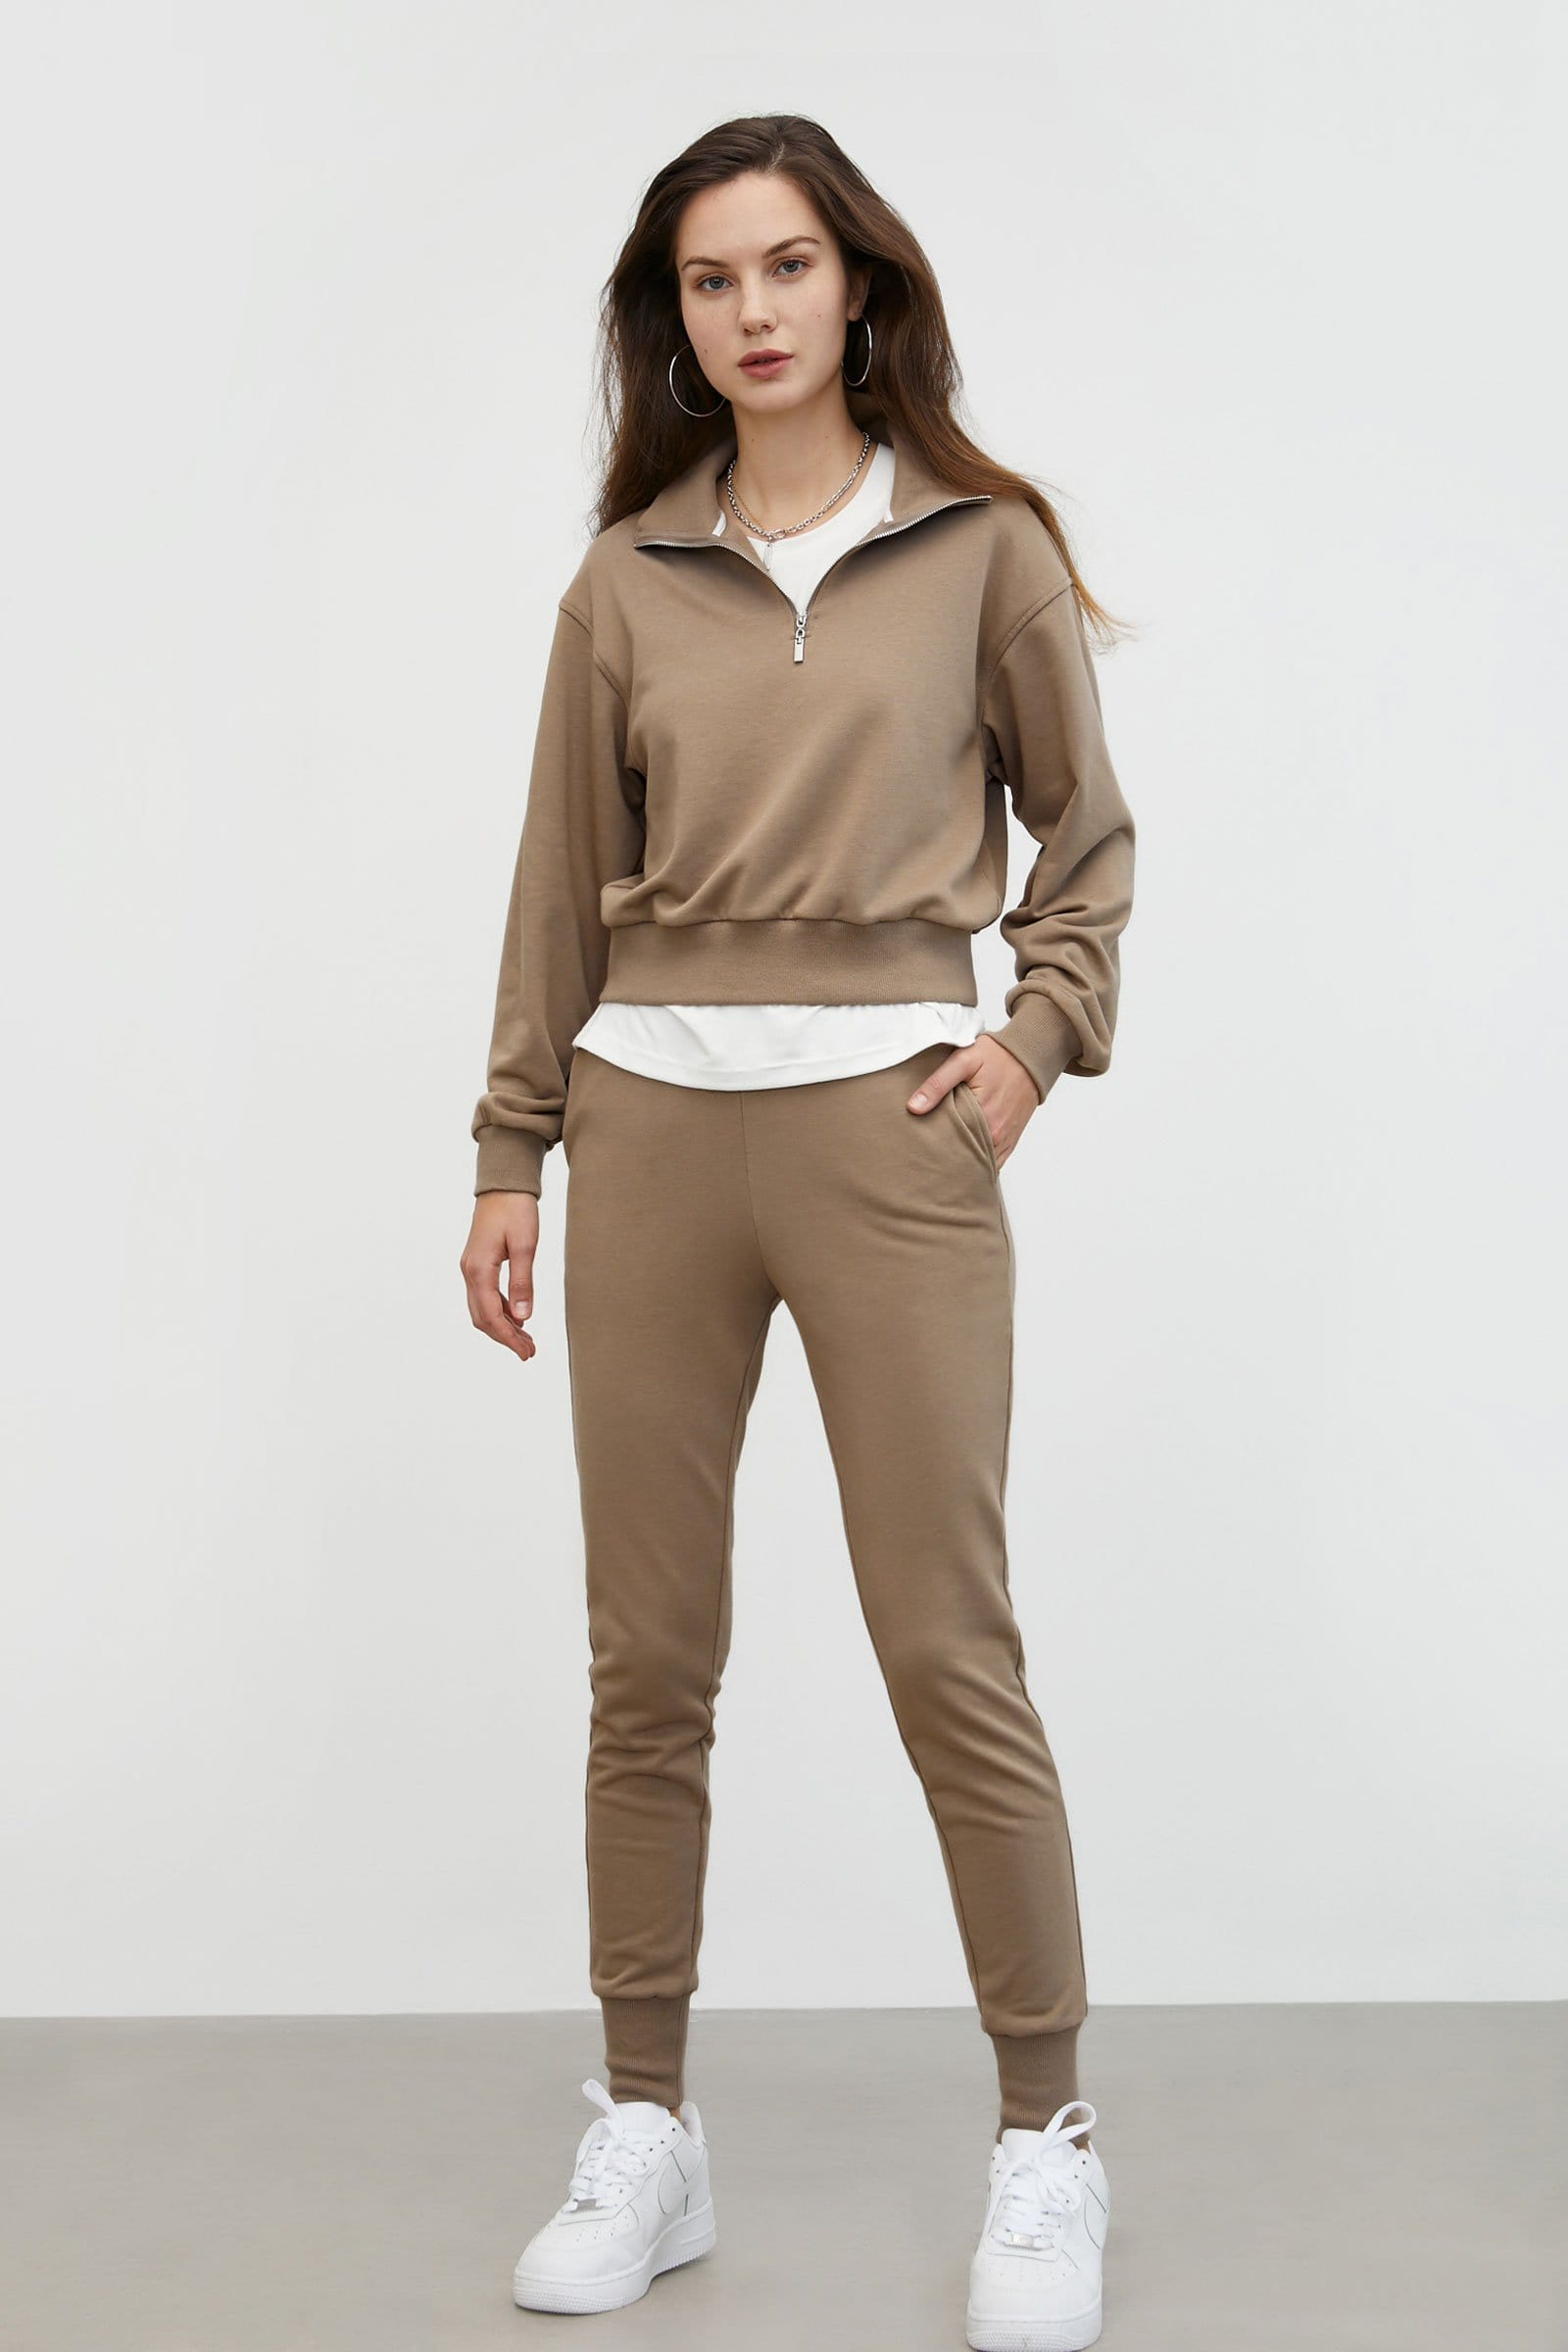 Cozy Tan Cropped Sweatshirt